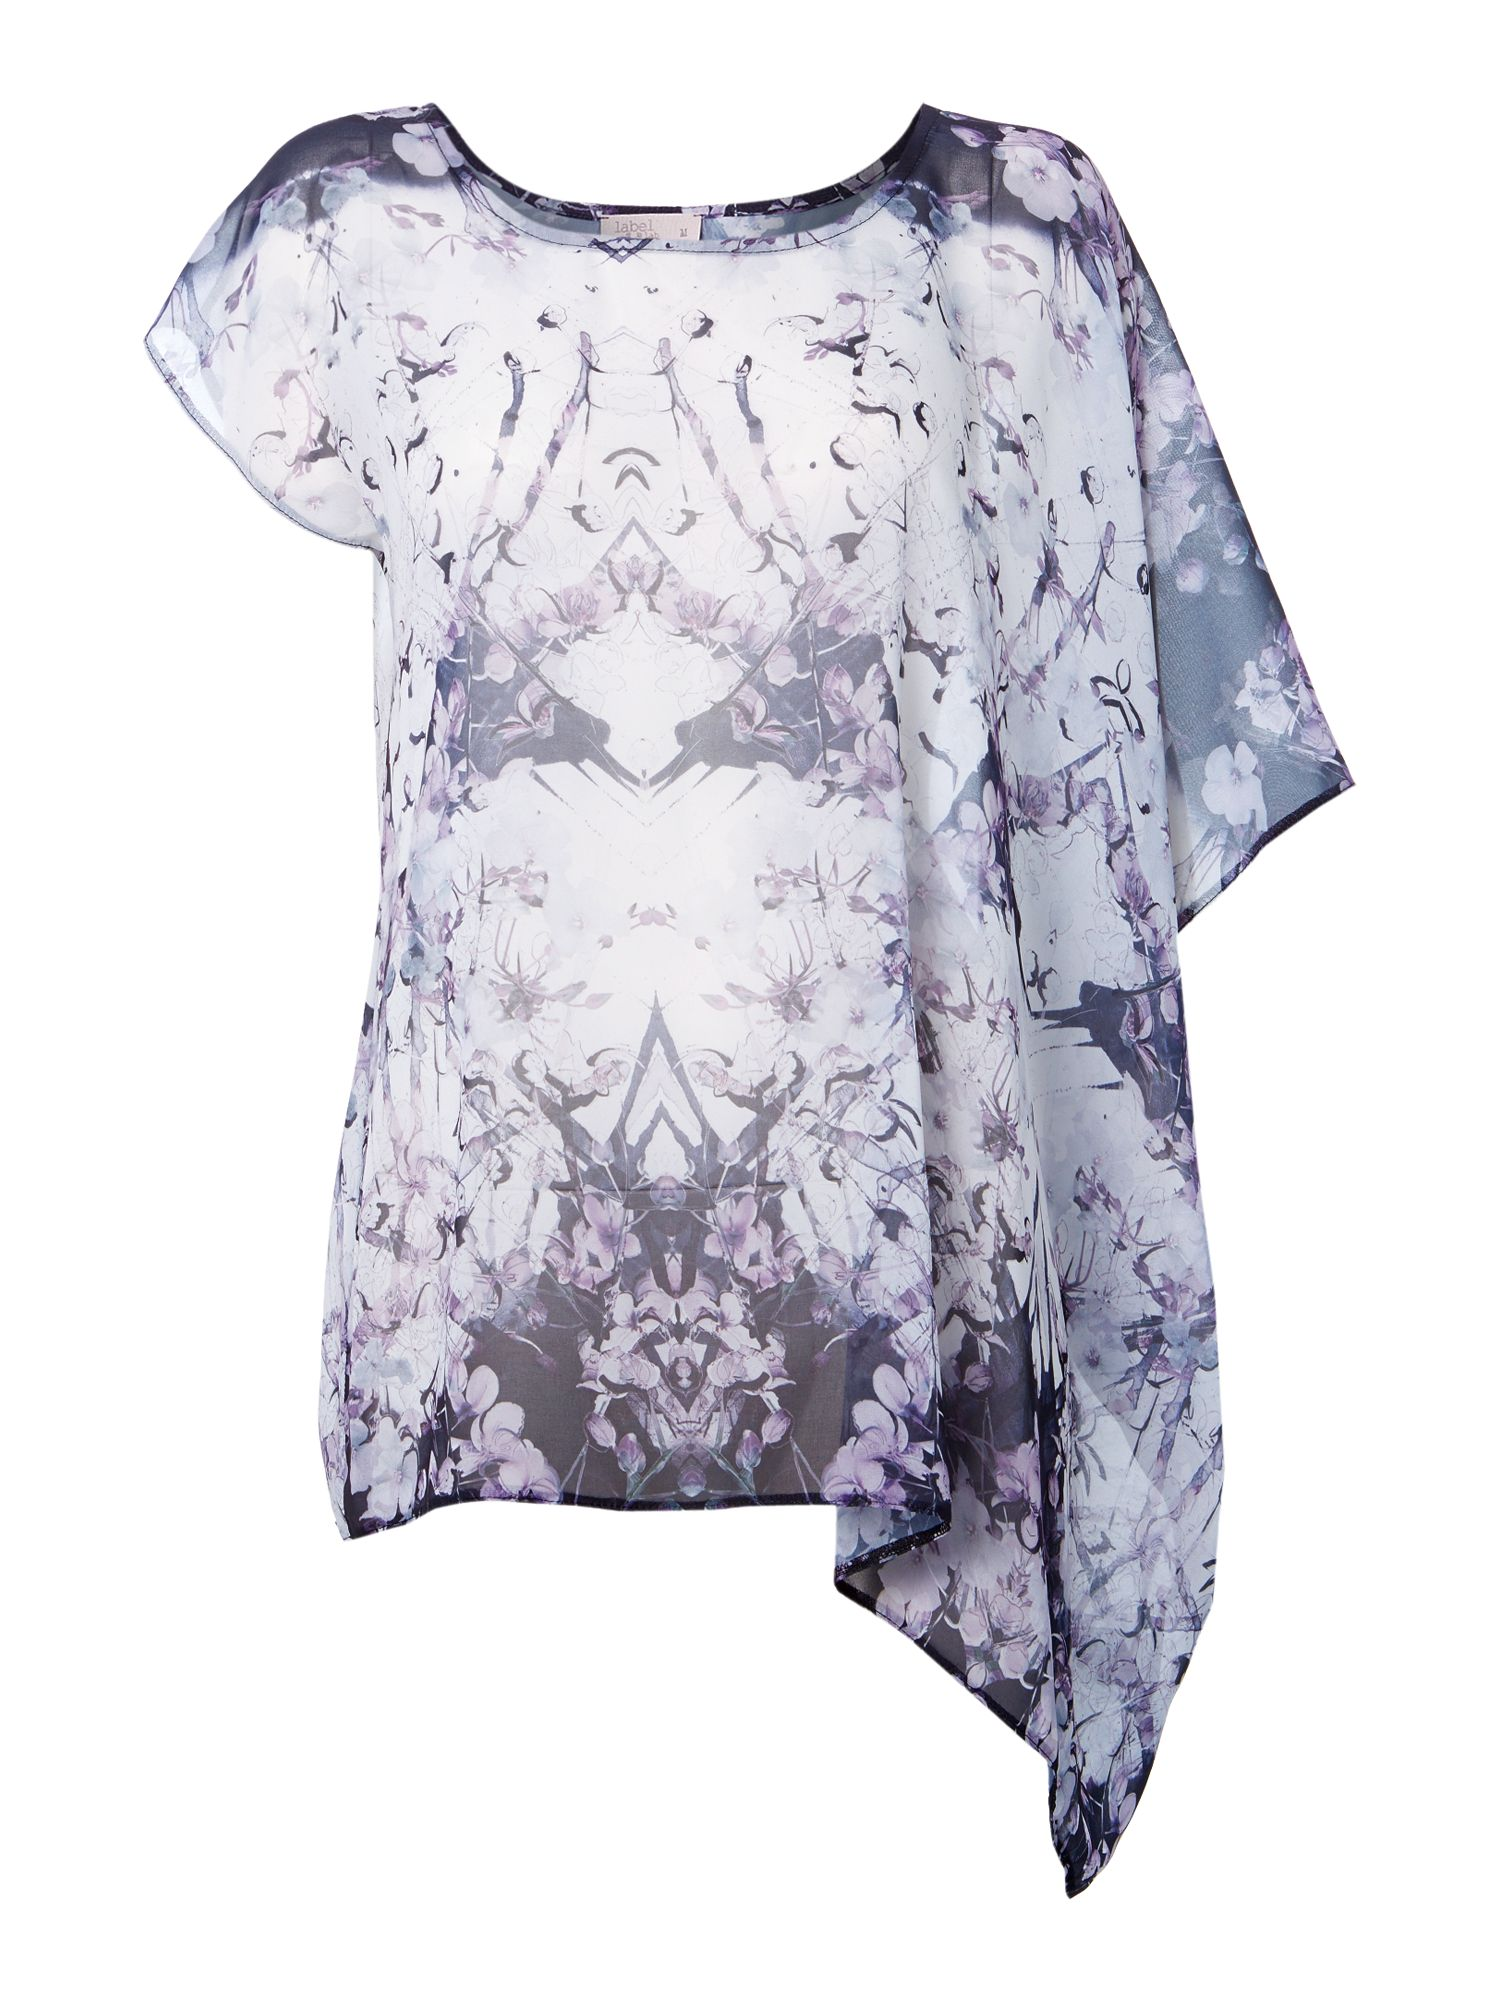 Iris digital print asymmetric top